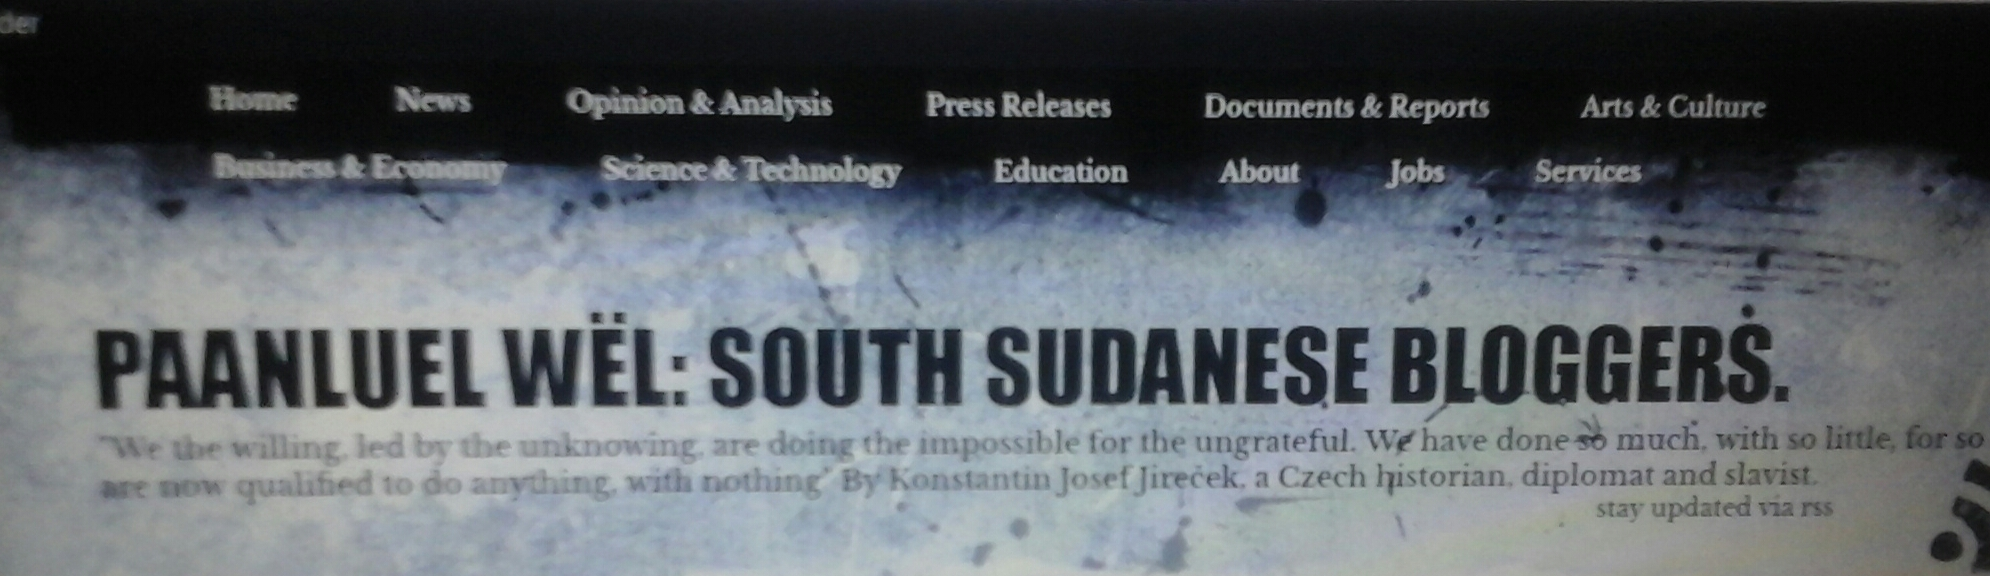 PaanLuel Wël: South Sudanese Bloggers (SSB): The Best Articles, Writers, of the Year 2016